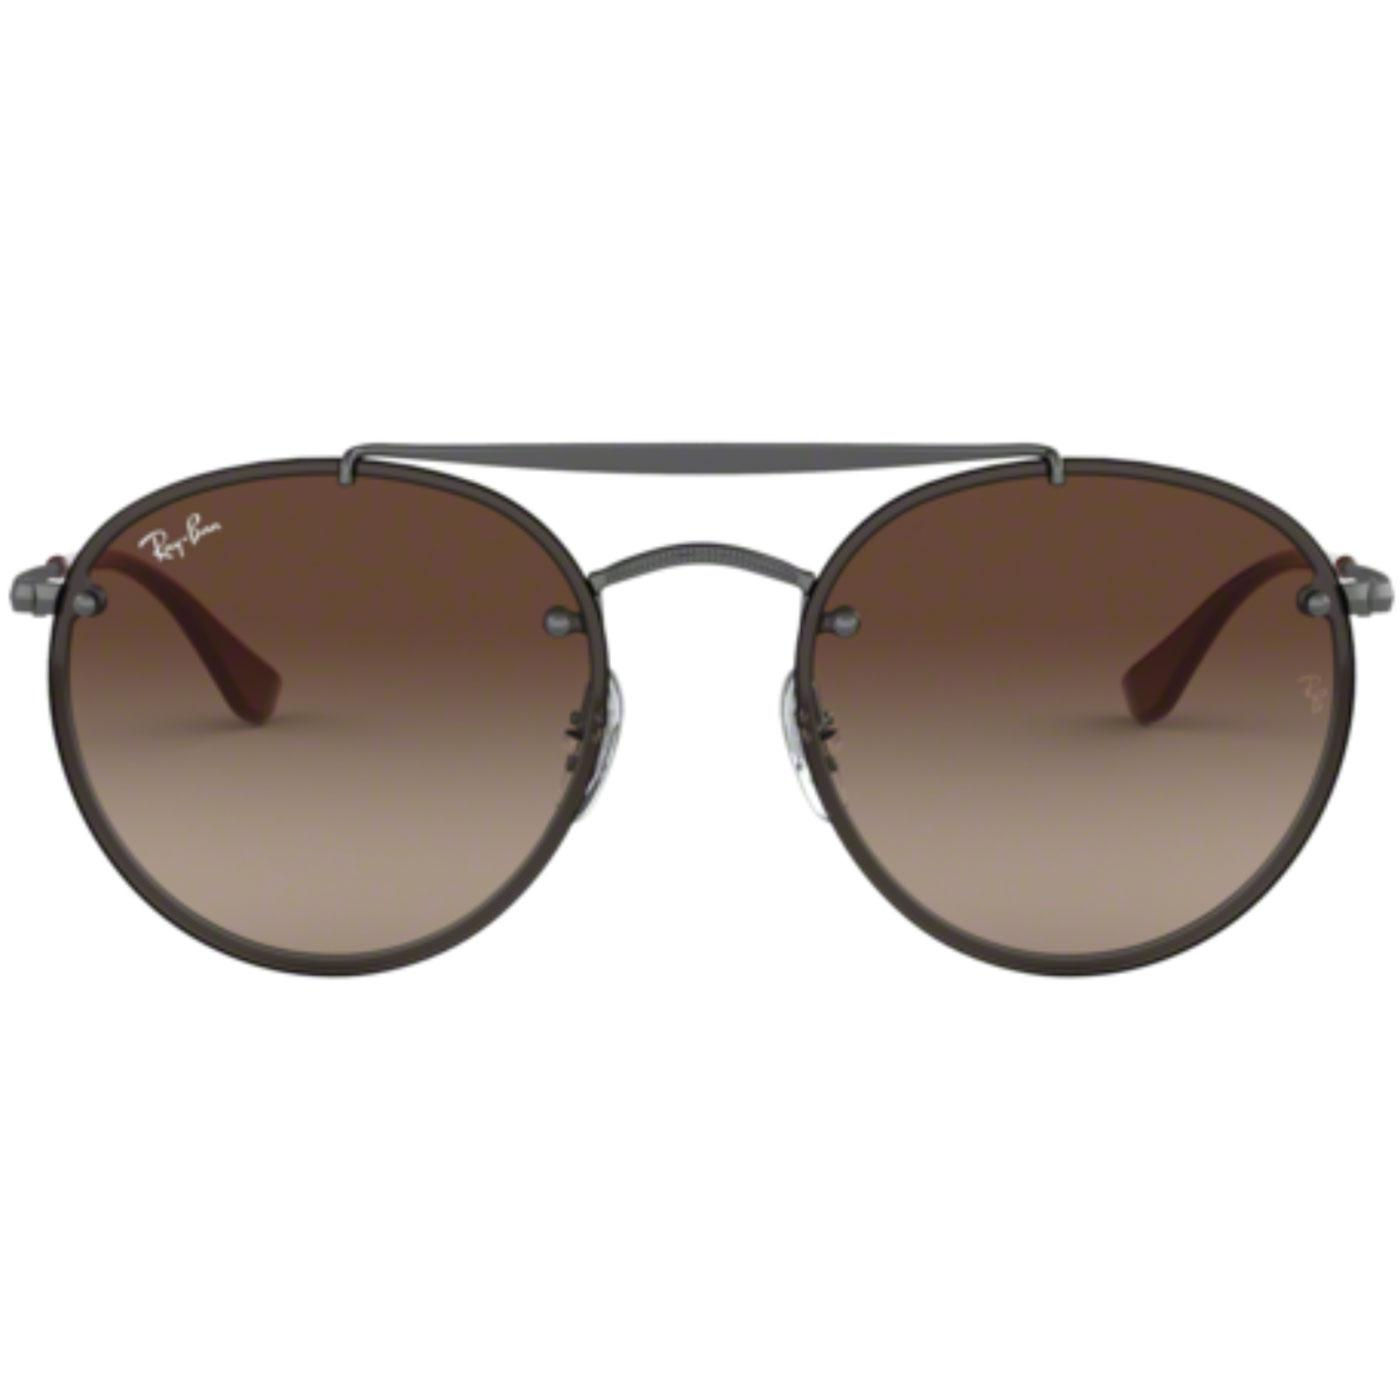 RAY-BAN 60s Double Bridge Blaze Round Sunglasses G